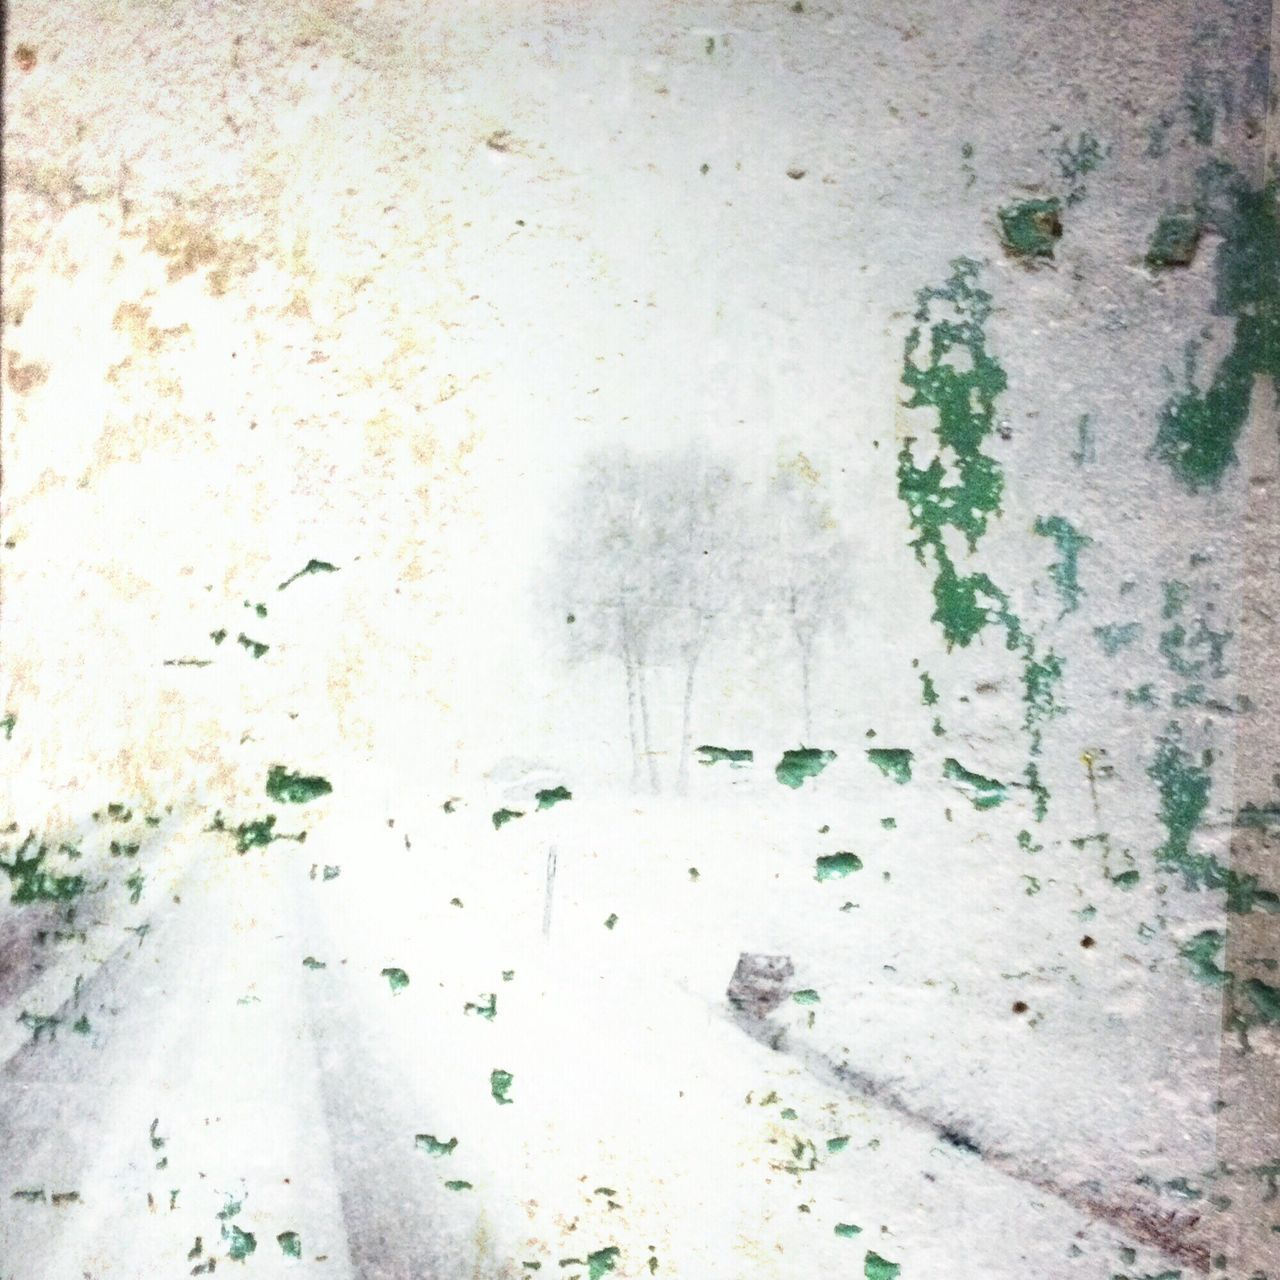 Snowstorm and colorstains. Snow Snowstorm Concrete Stains EyeEm Best Shots Edited